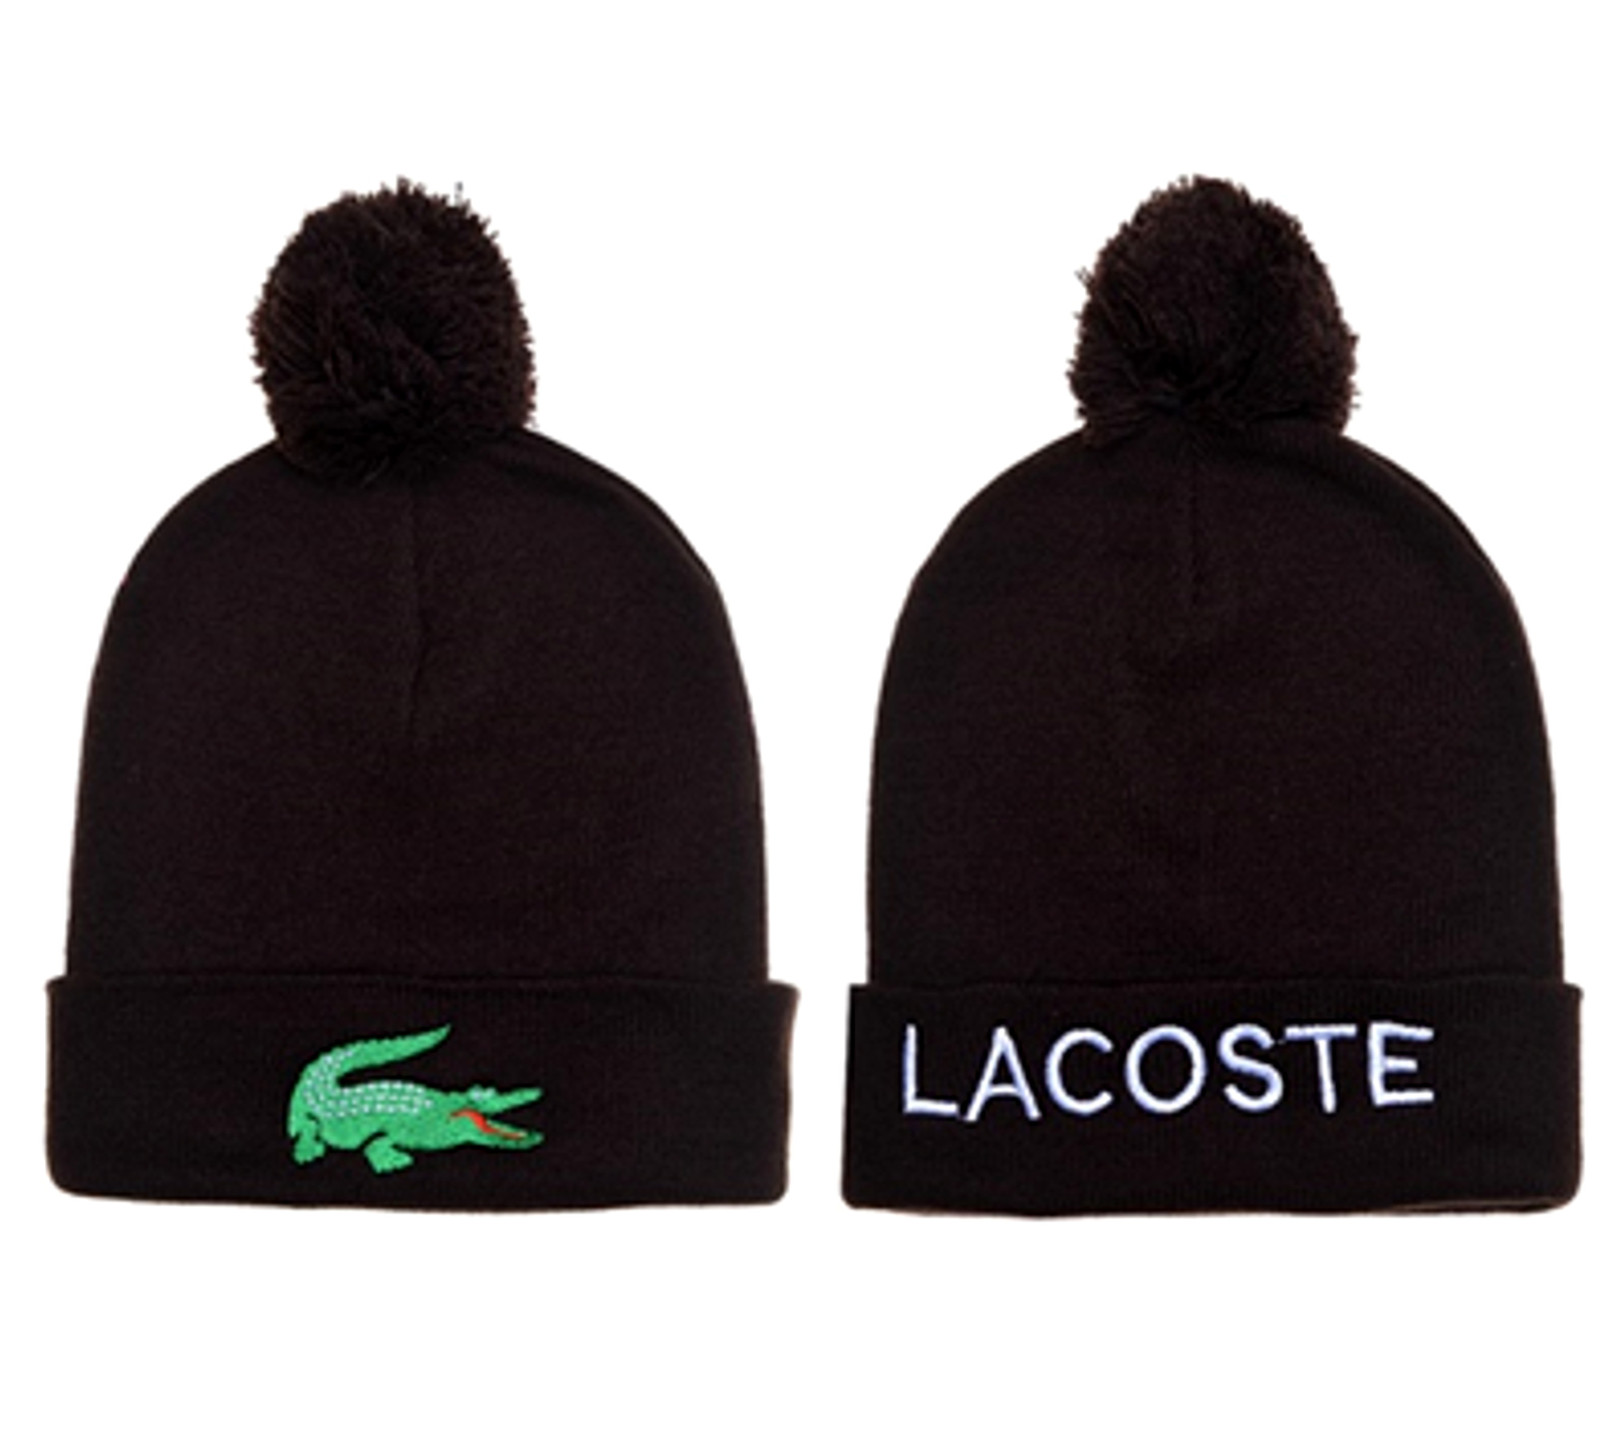 0c9aba93fd271 Lacoste Pom Pom Beanie Hat and 20 similar items